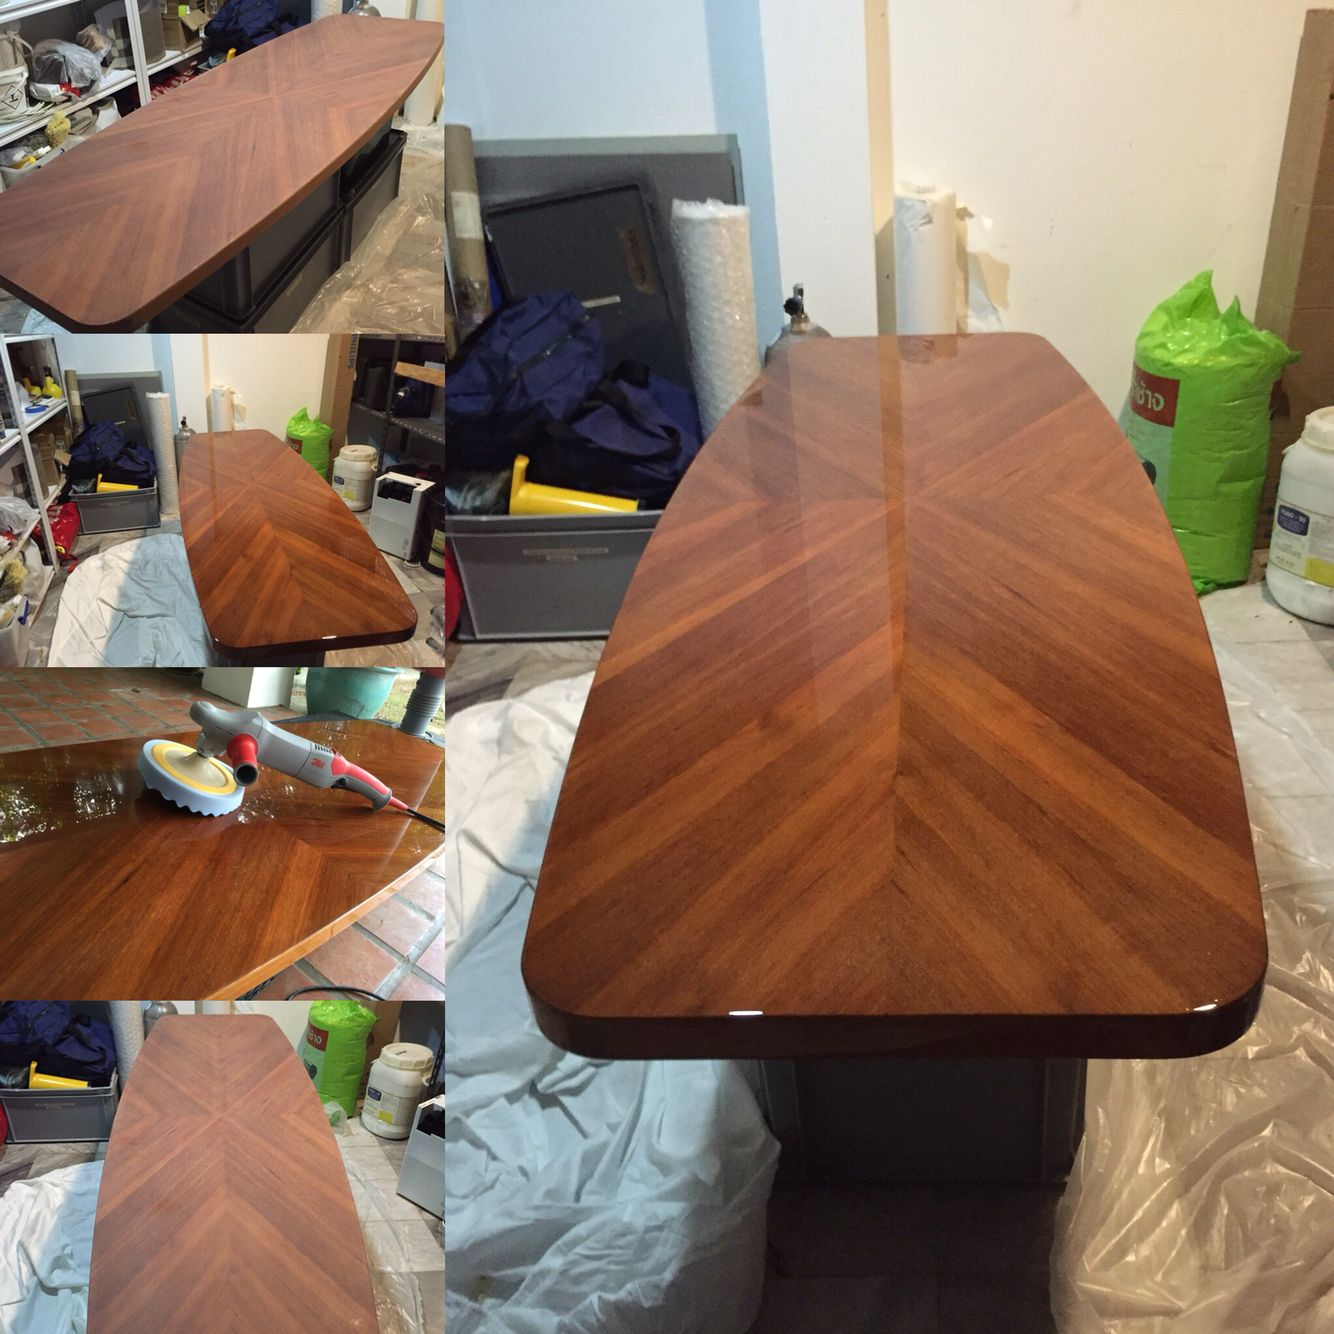 Astounding Large Teak Coffee Table Stripped To Bare Wood Built Up And Lamtechconsult Wood Chair Design Ideas Lamtechconsultcom